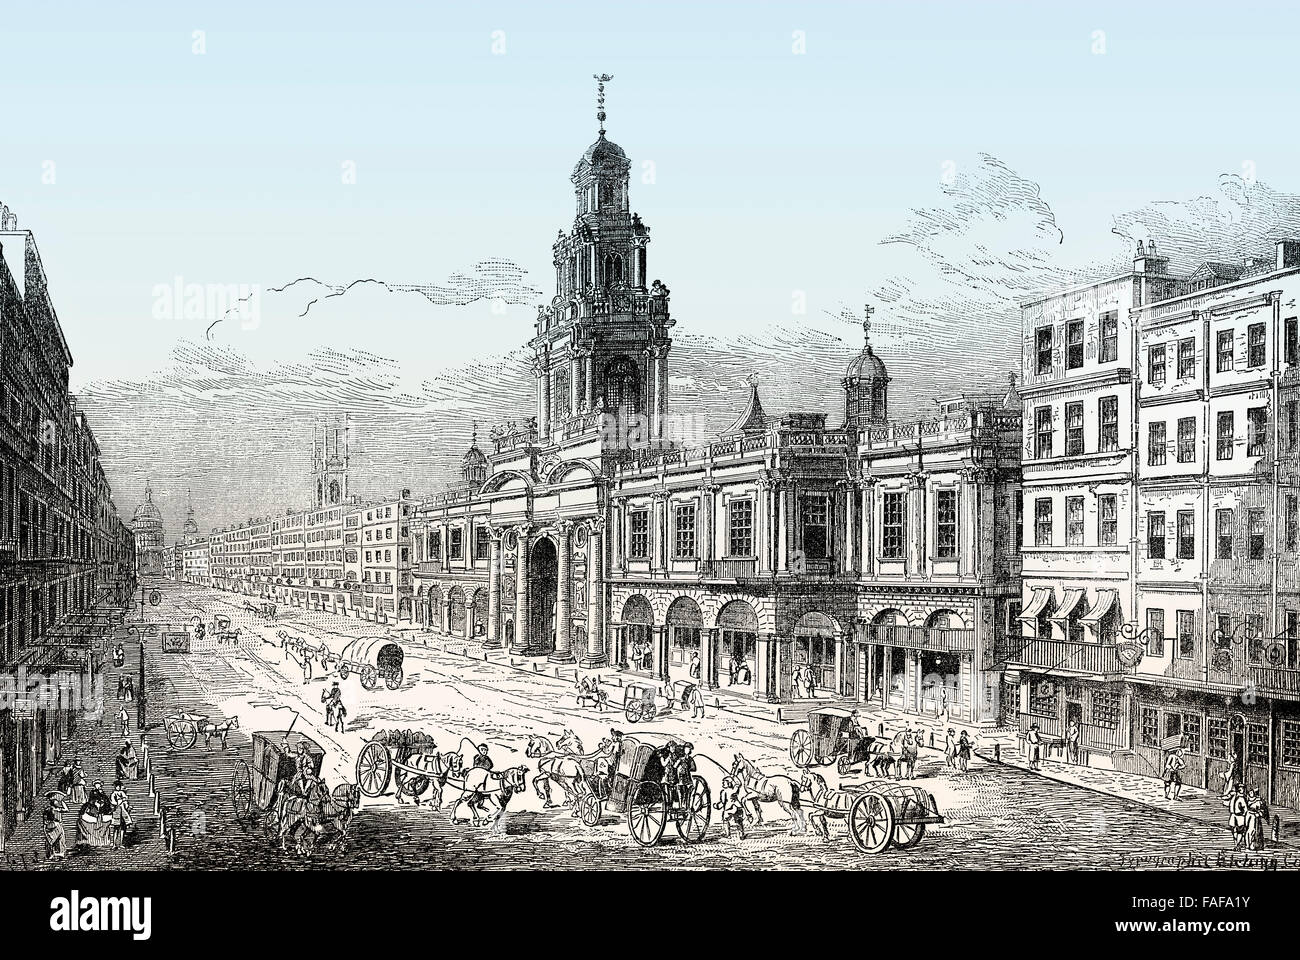 The second Royal Exchange, London, 18th century - Stock Image